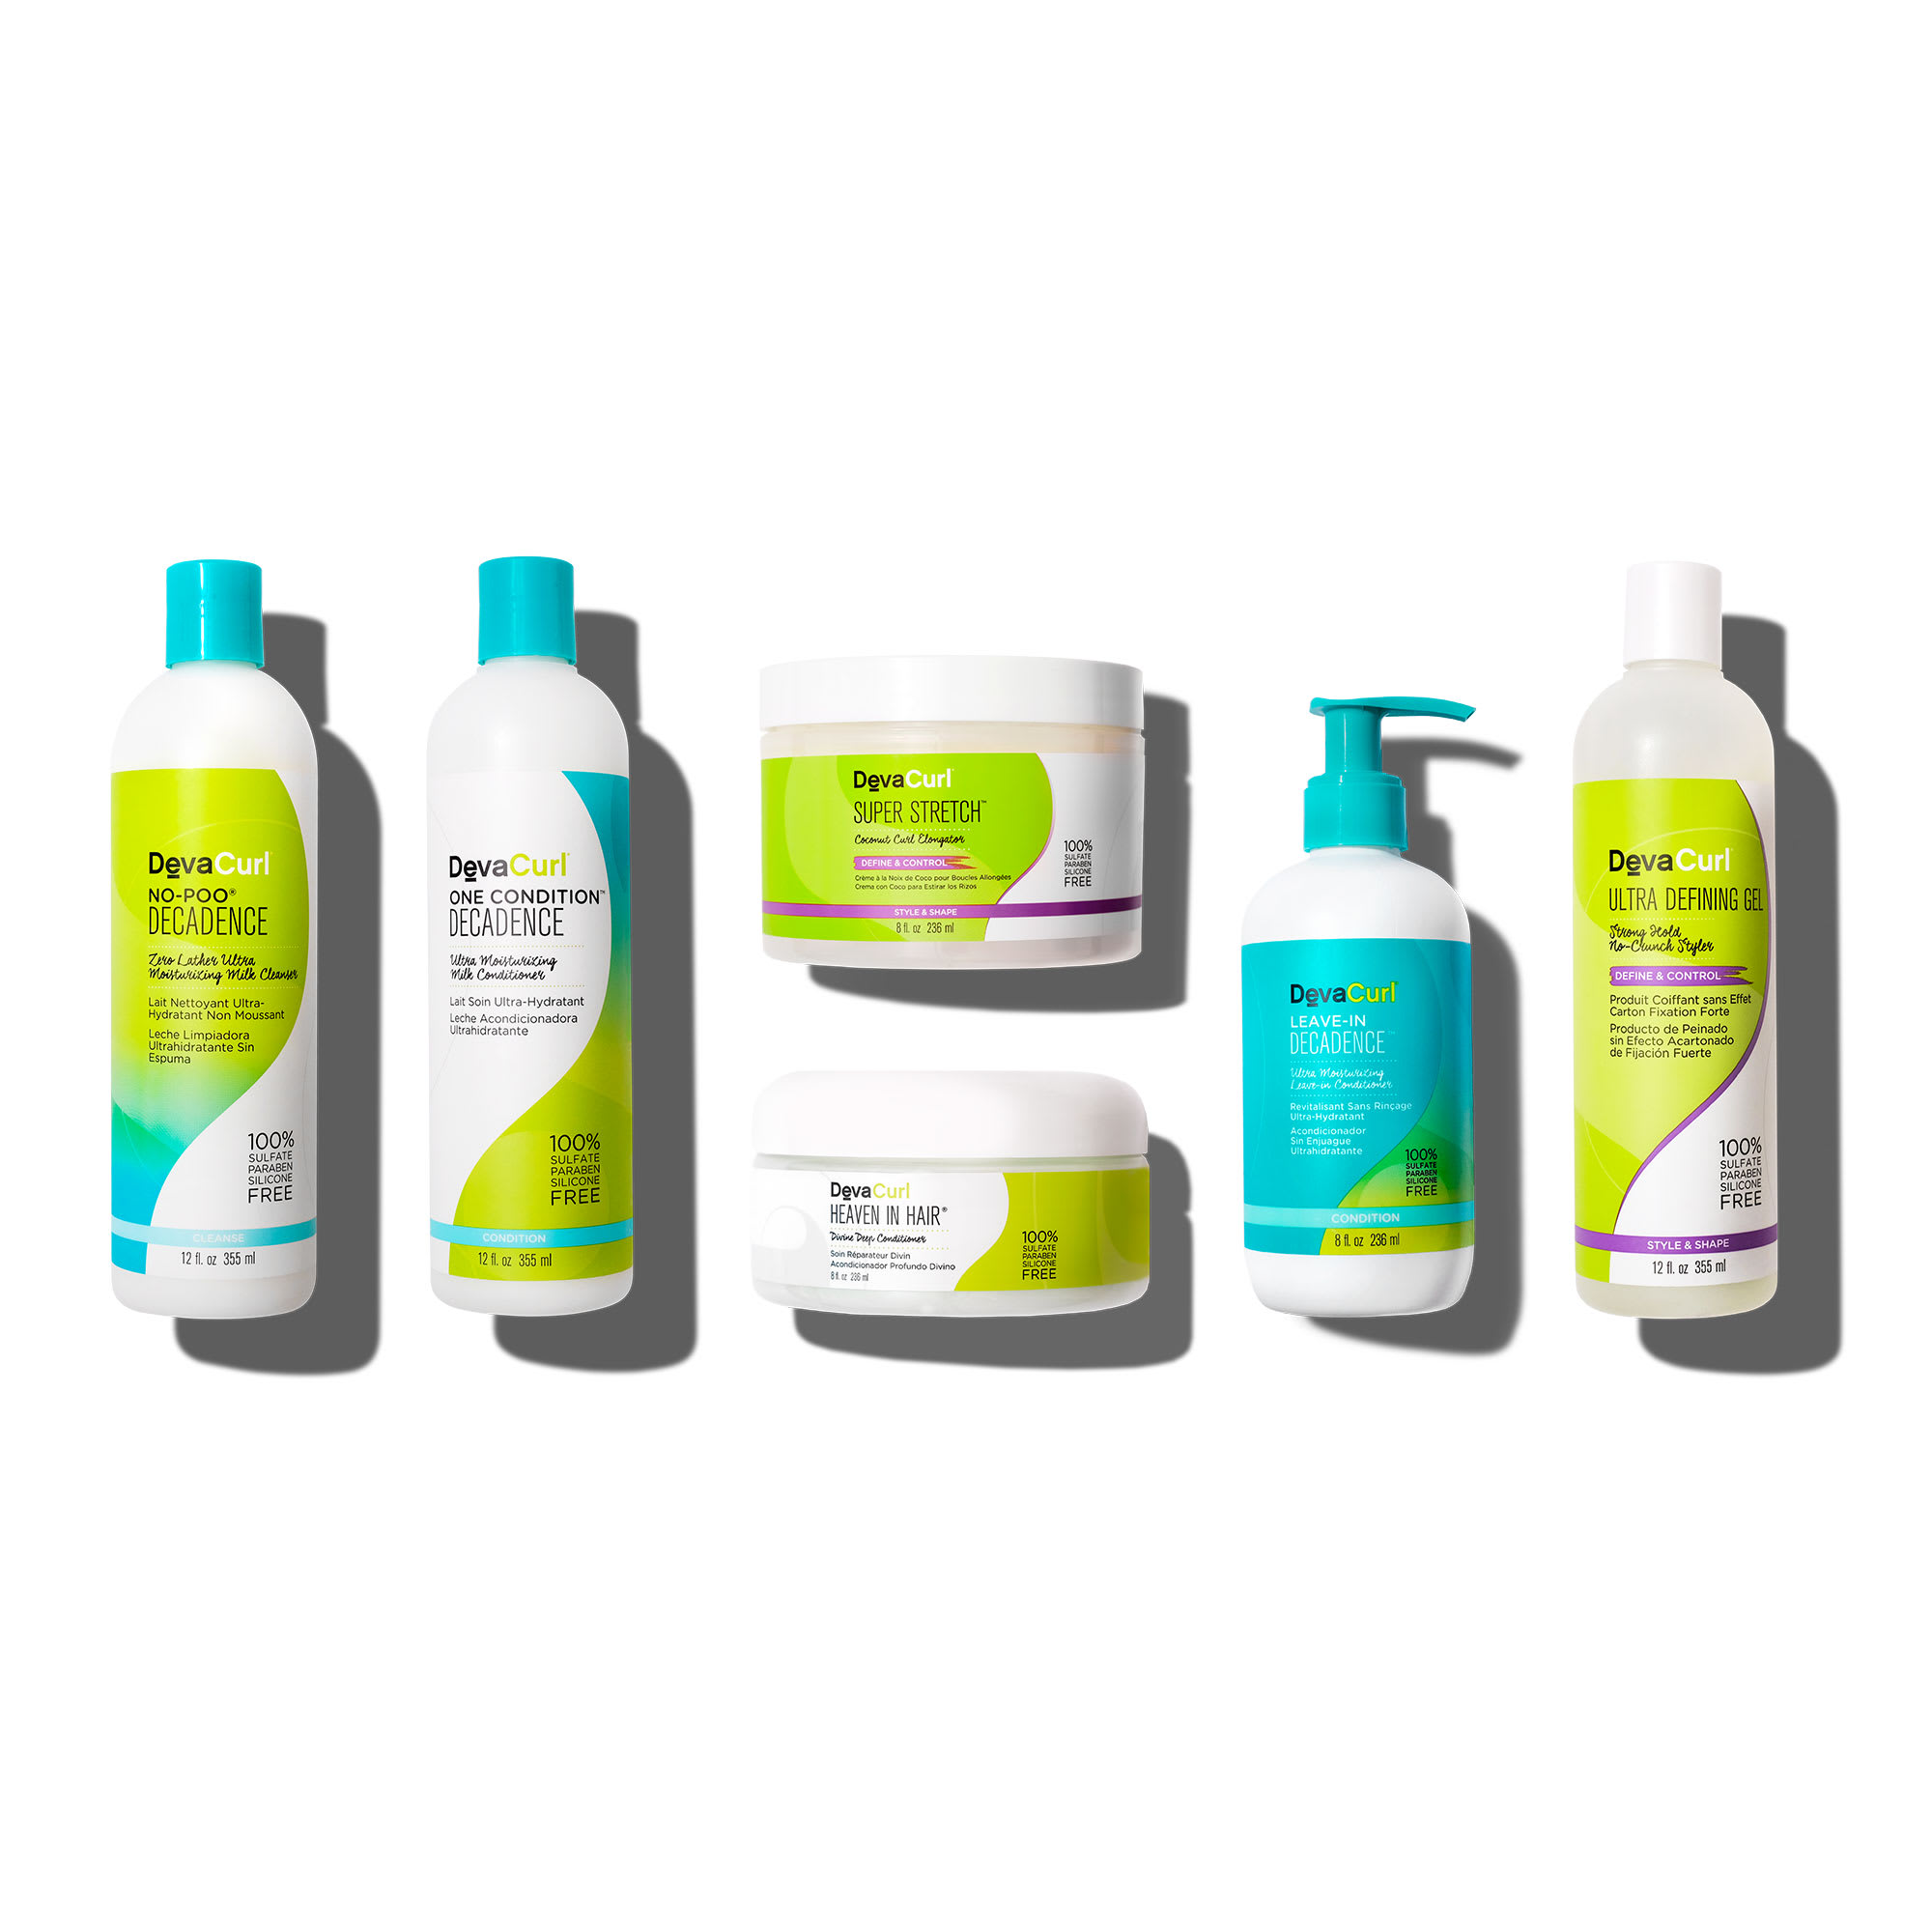 Decadence cleanser, conditioner and leave-in bottles. Ultra Defining Gel, Heaven in hair, and Super Stretch bottles.